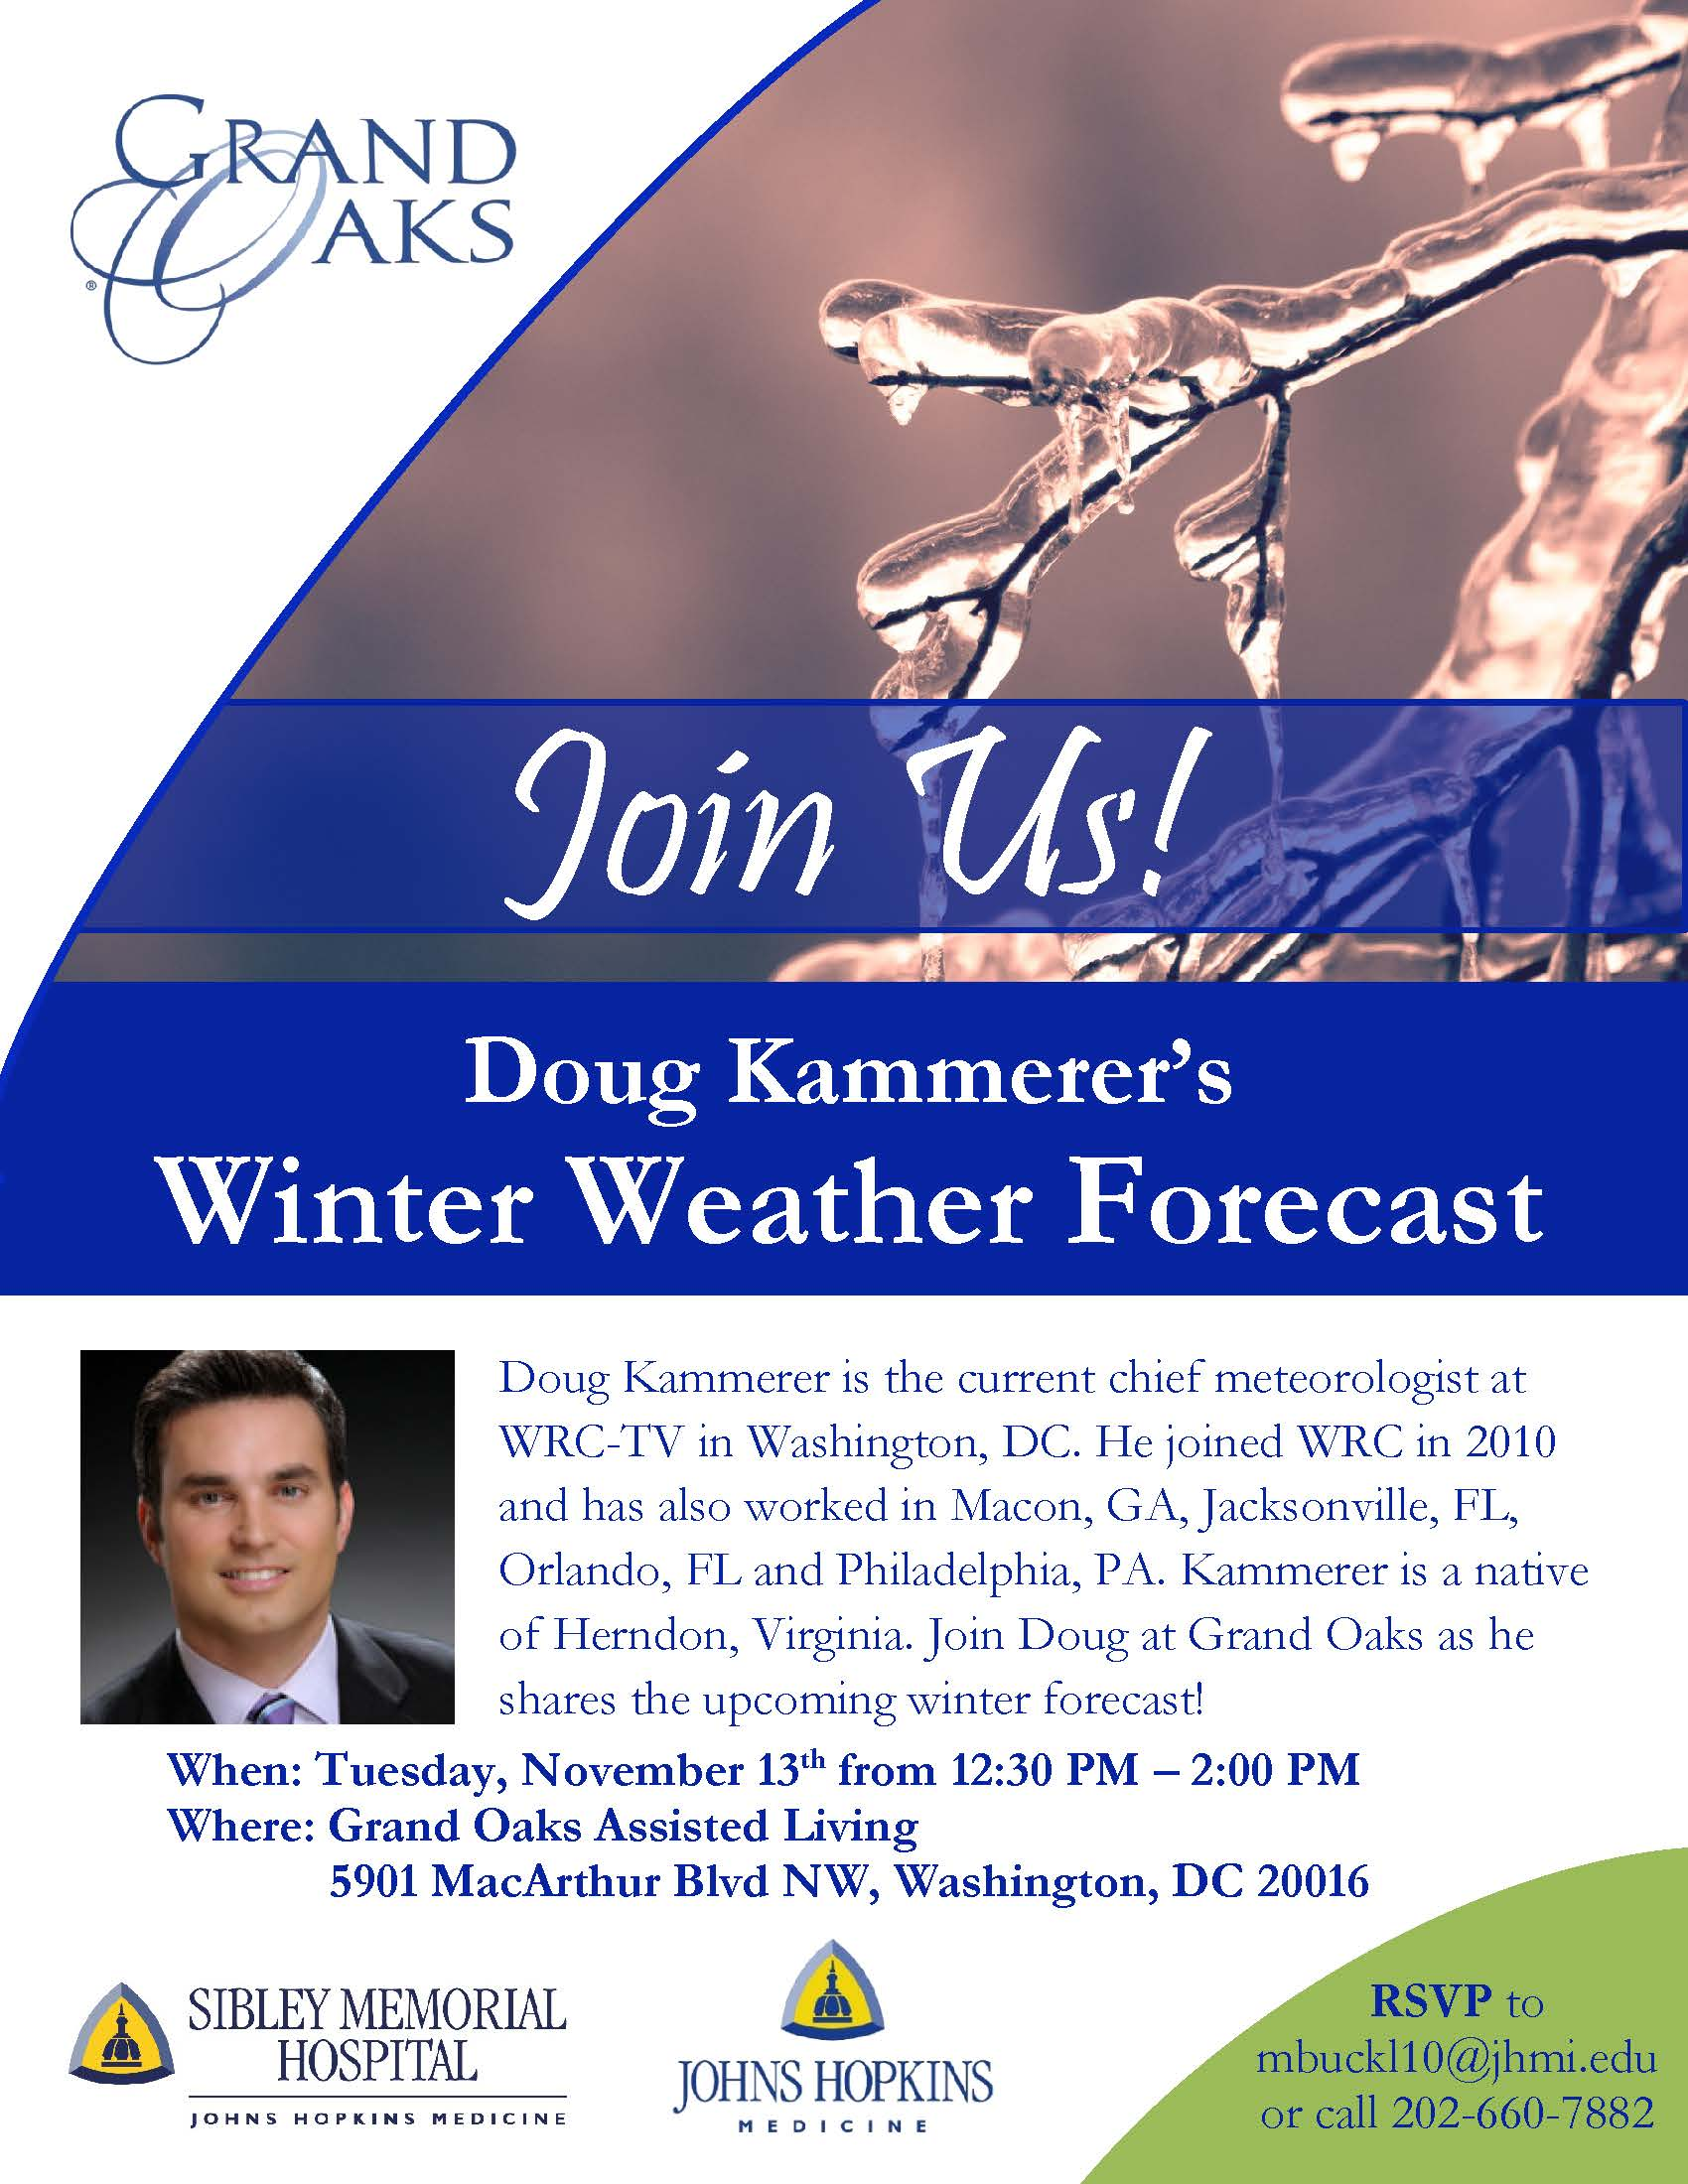 Winter Weather Forecast Flyer